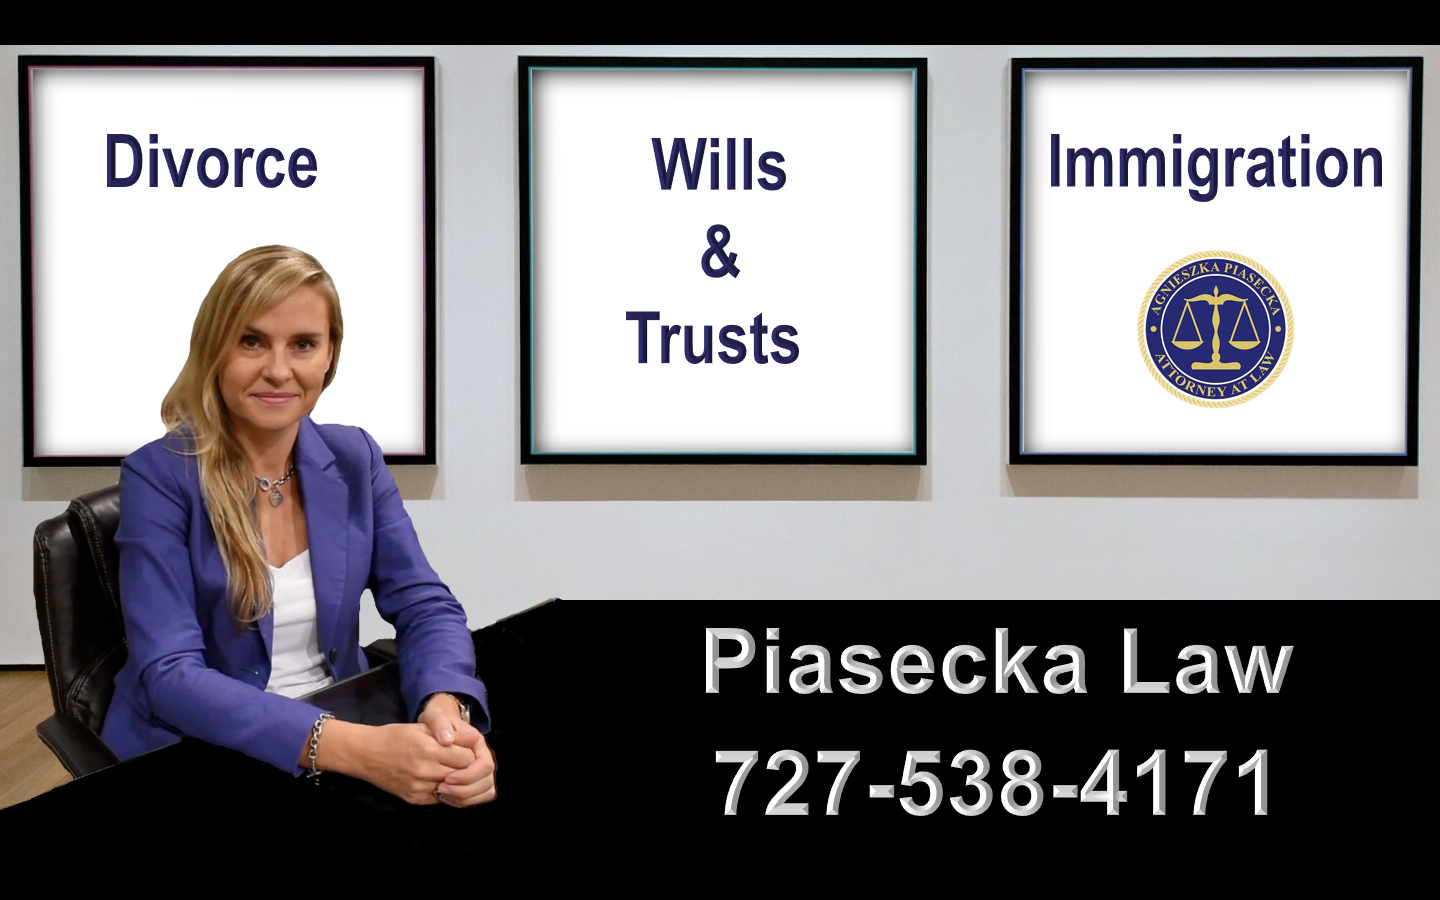 Divorce Wills & Trusts Immigration Attorney Agnieszka Aga Piasecka Law Florida